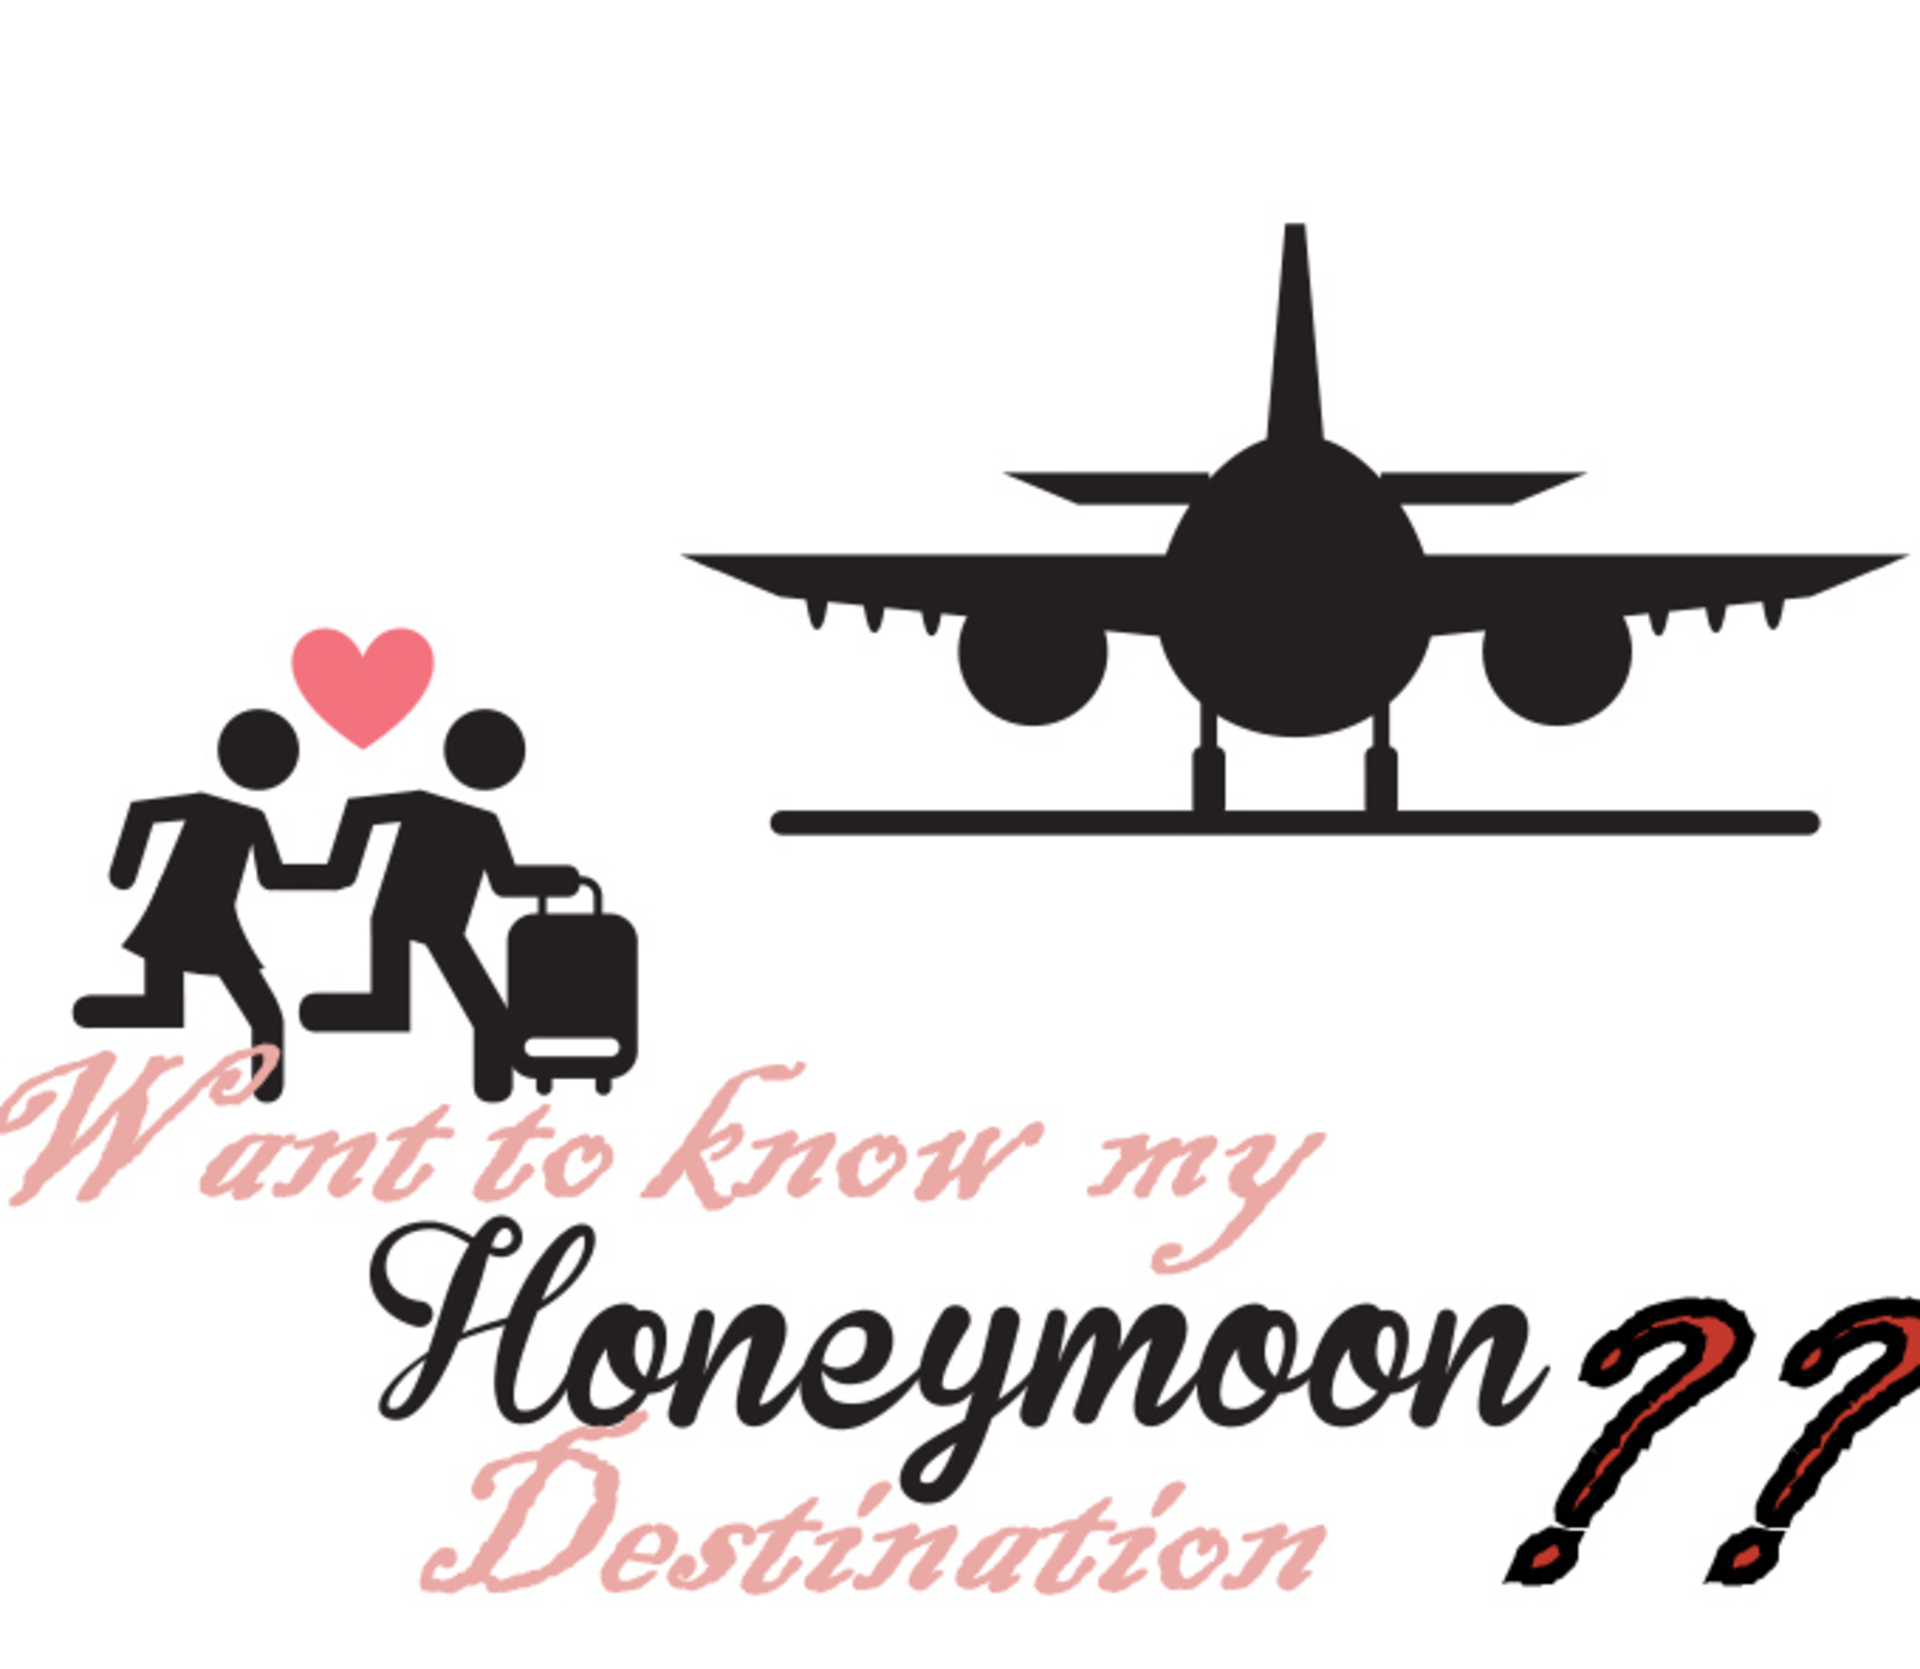 Want to know what my honeymoon looked like?? image